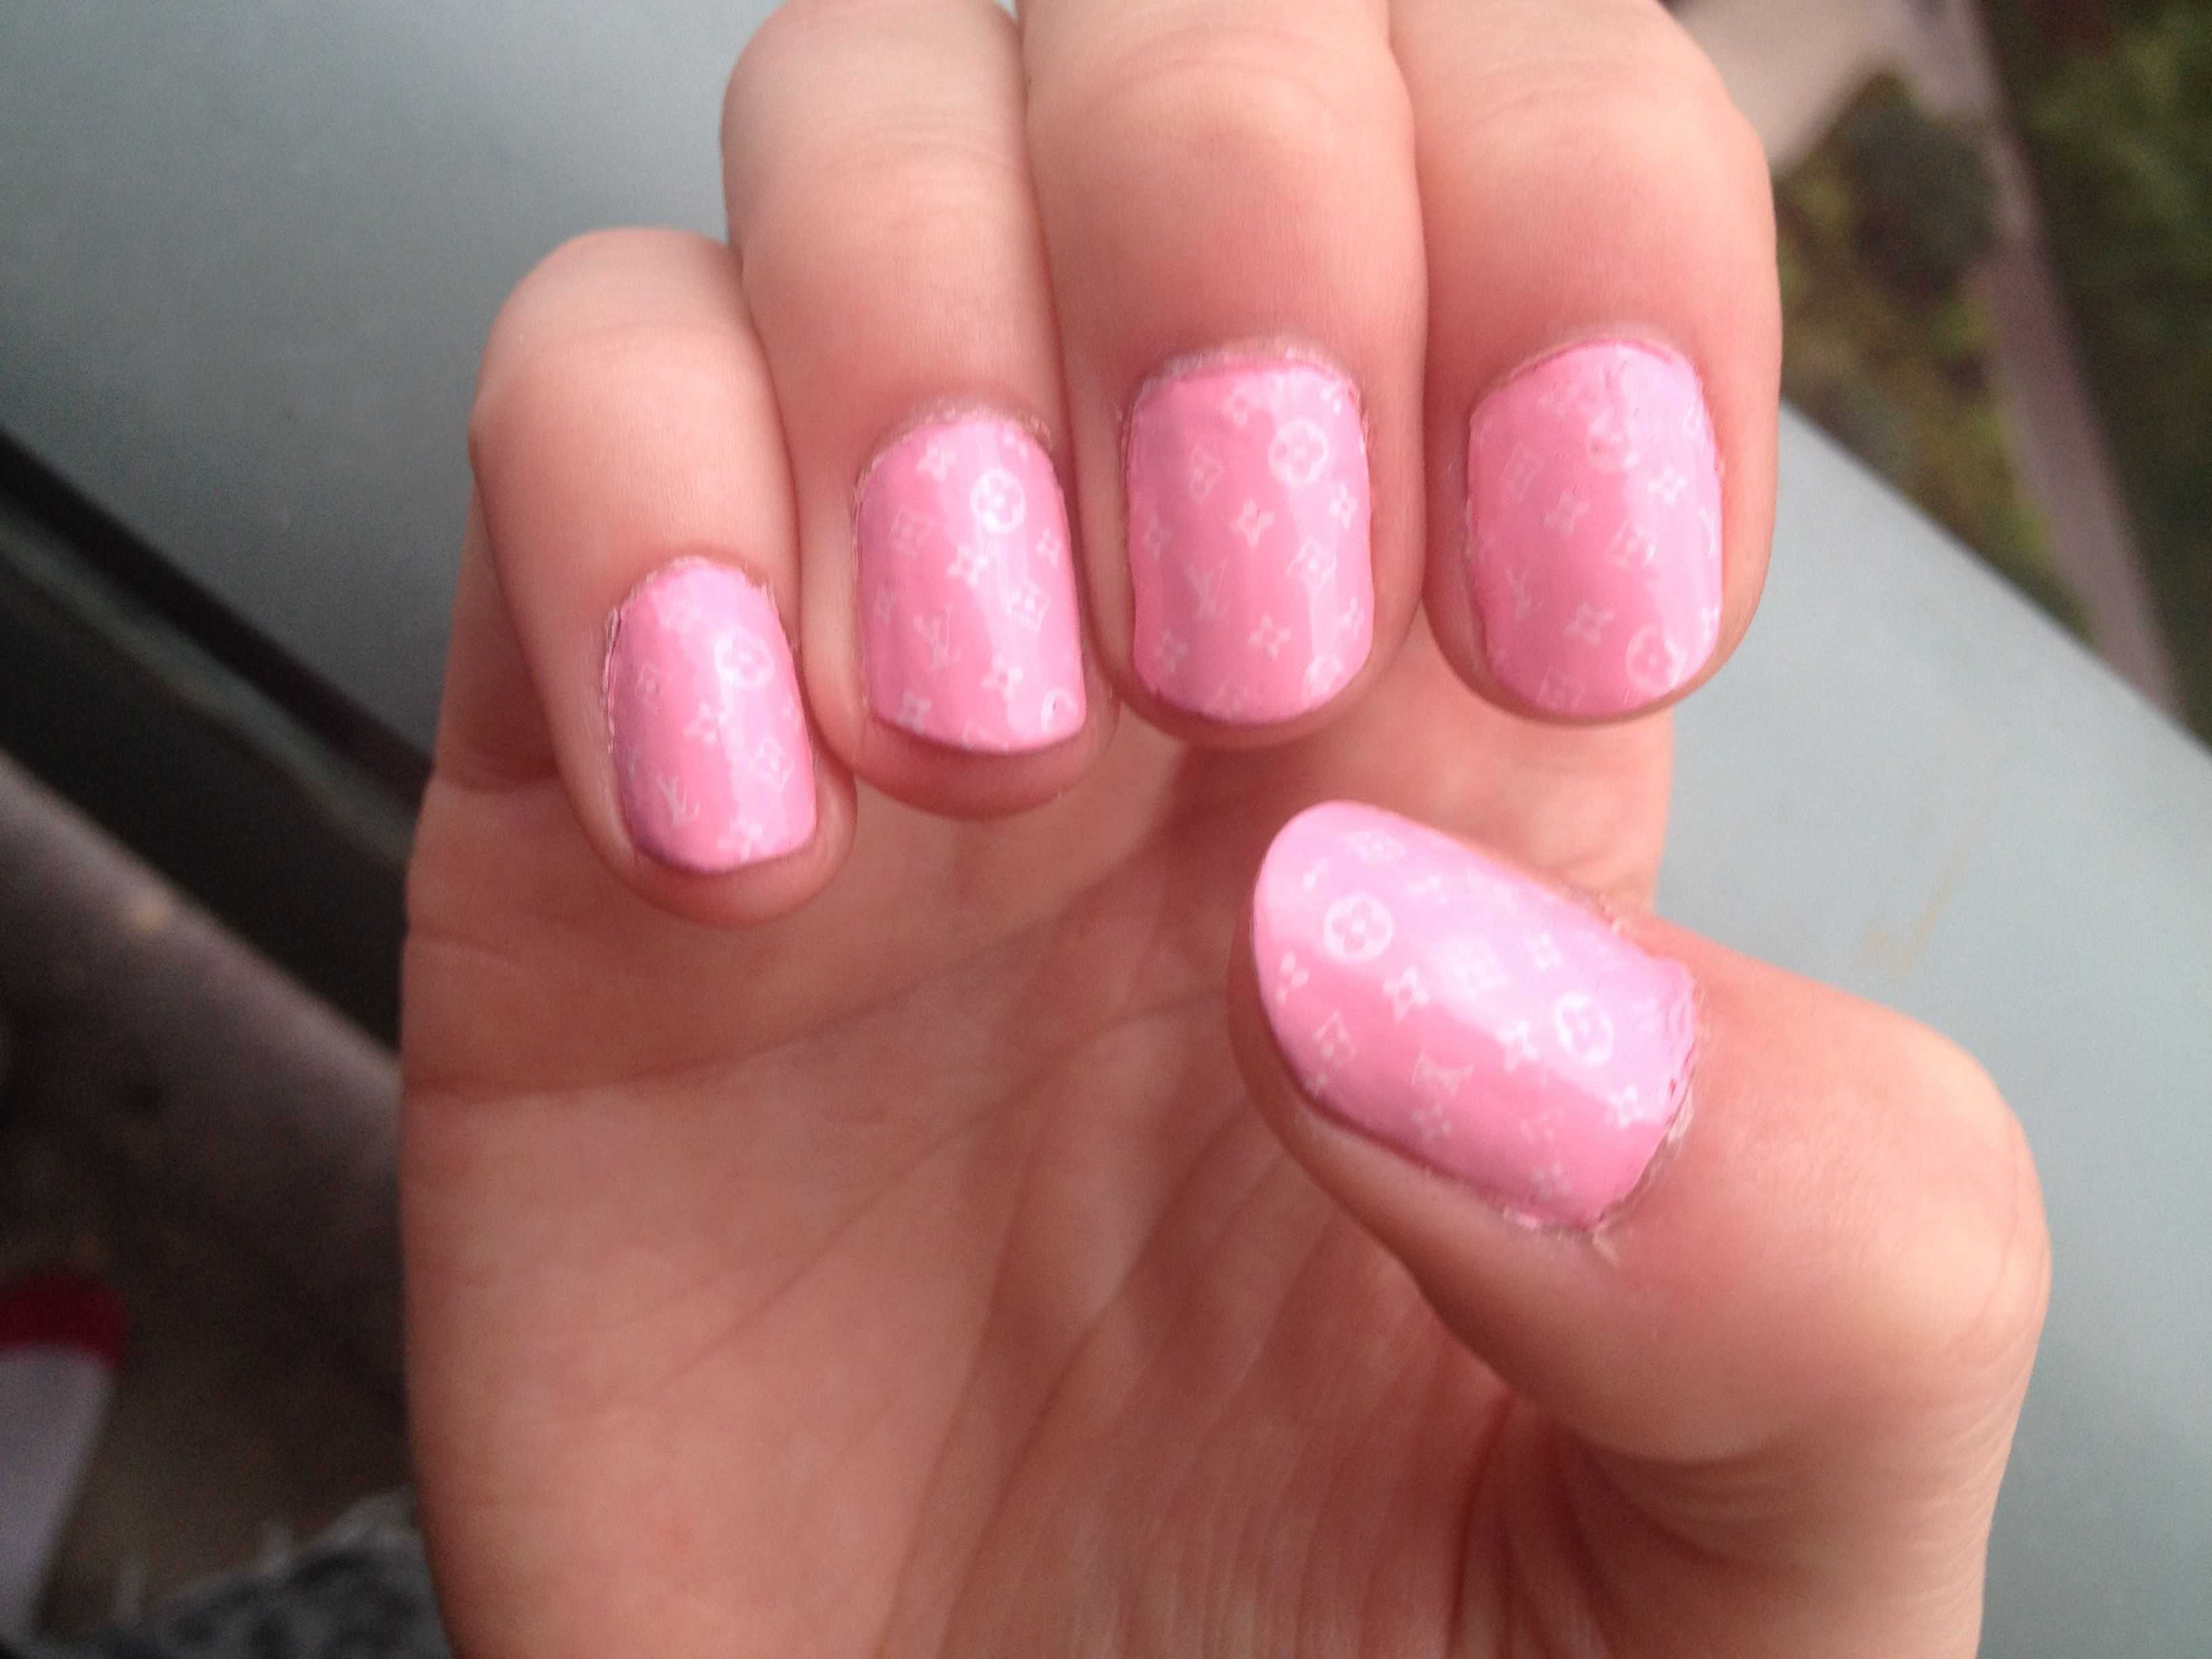 Baby pink Louis Vuitton print mani! I am in serious love   baby pink louis